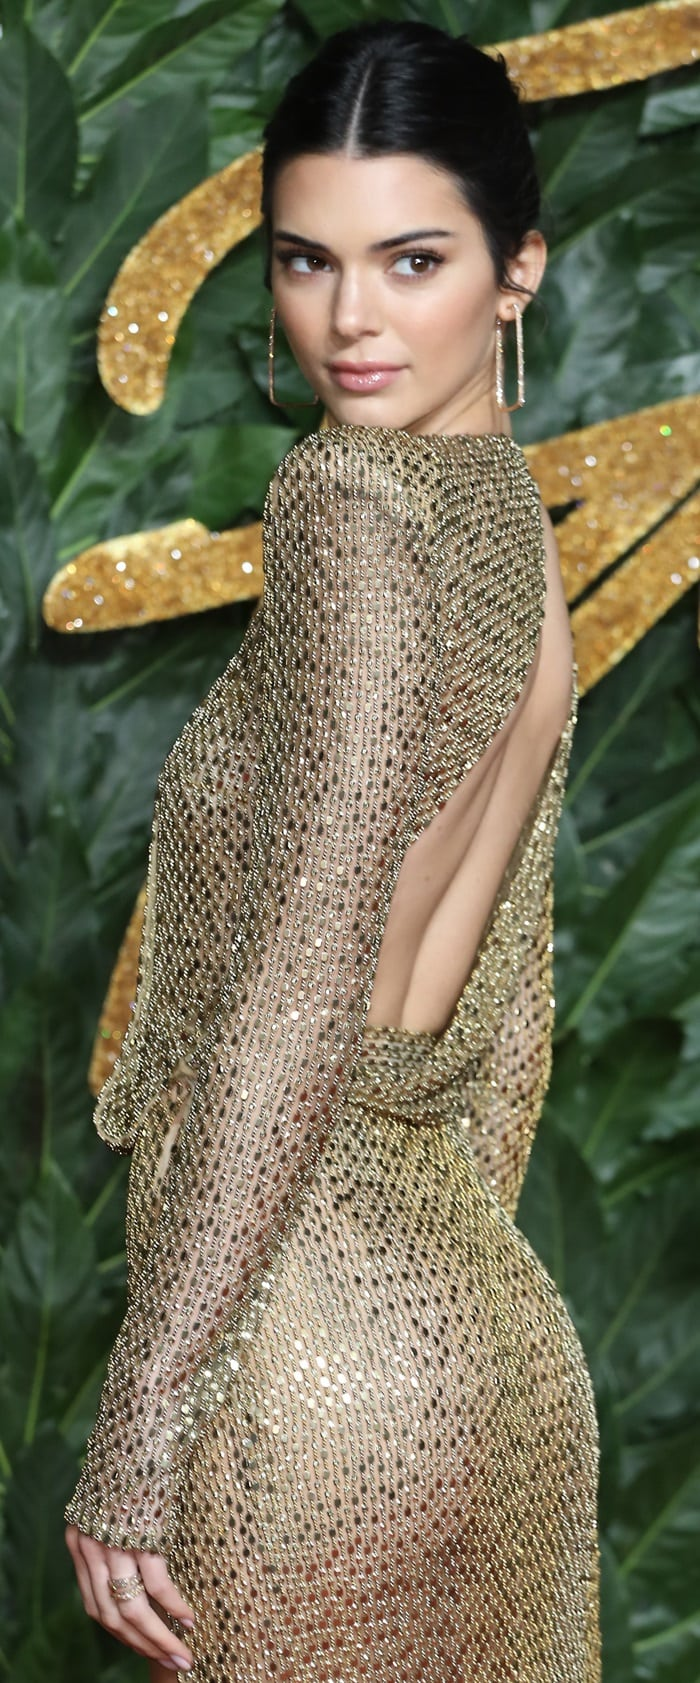 Kendall Jenner's sexy Julien Macdonald dress features an open back